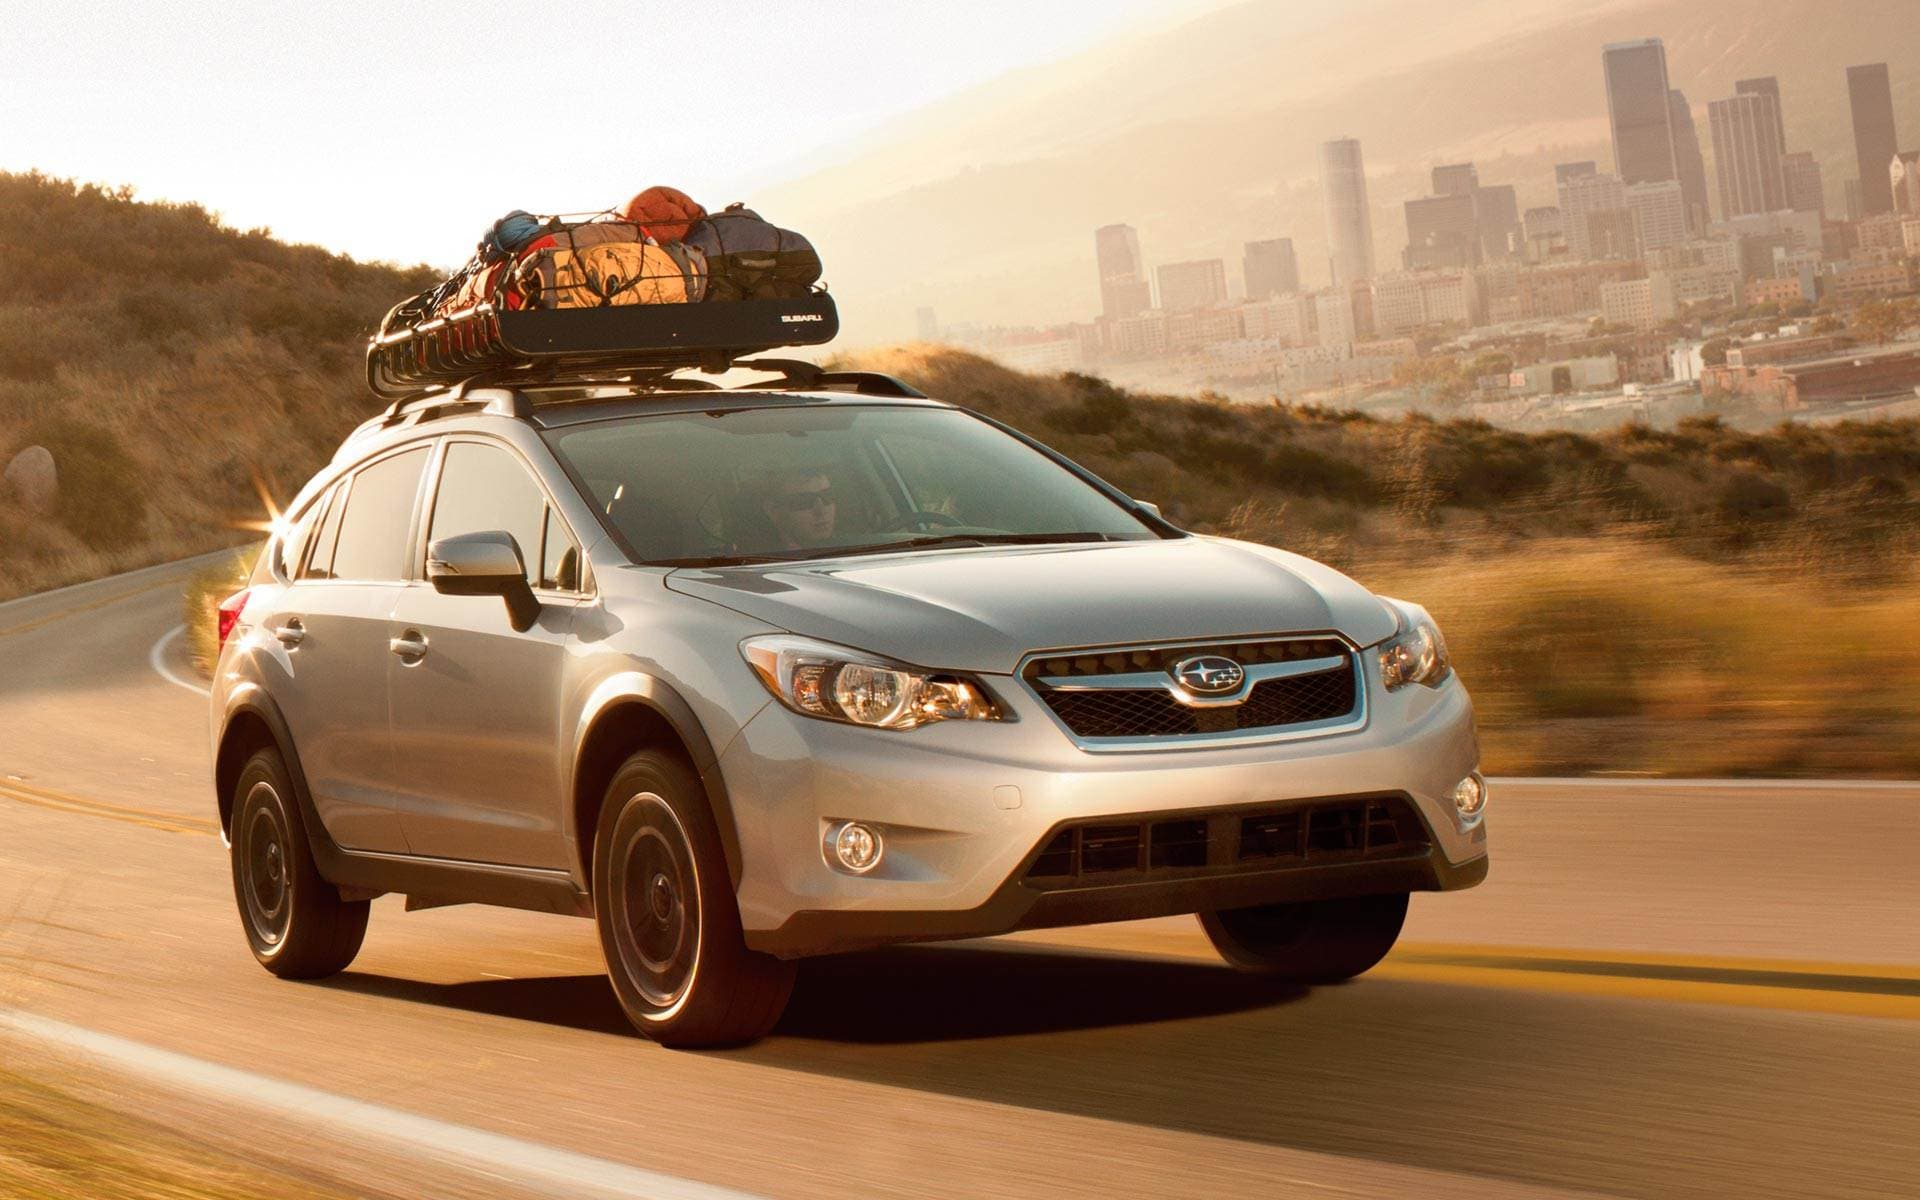 2015 subaru xv crosstrek hybrid syracuse ny bill rapp subaru. Black Bedroom Furniture Sets. Home Design Ideas